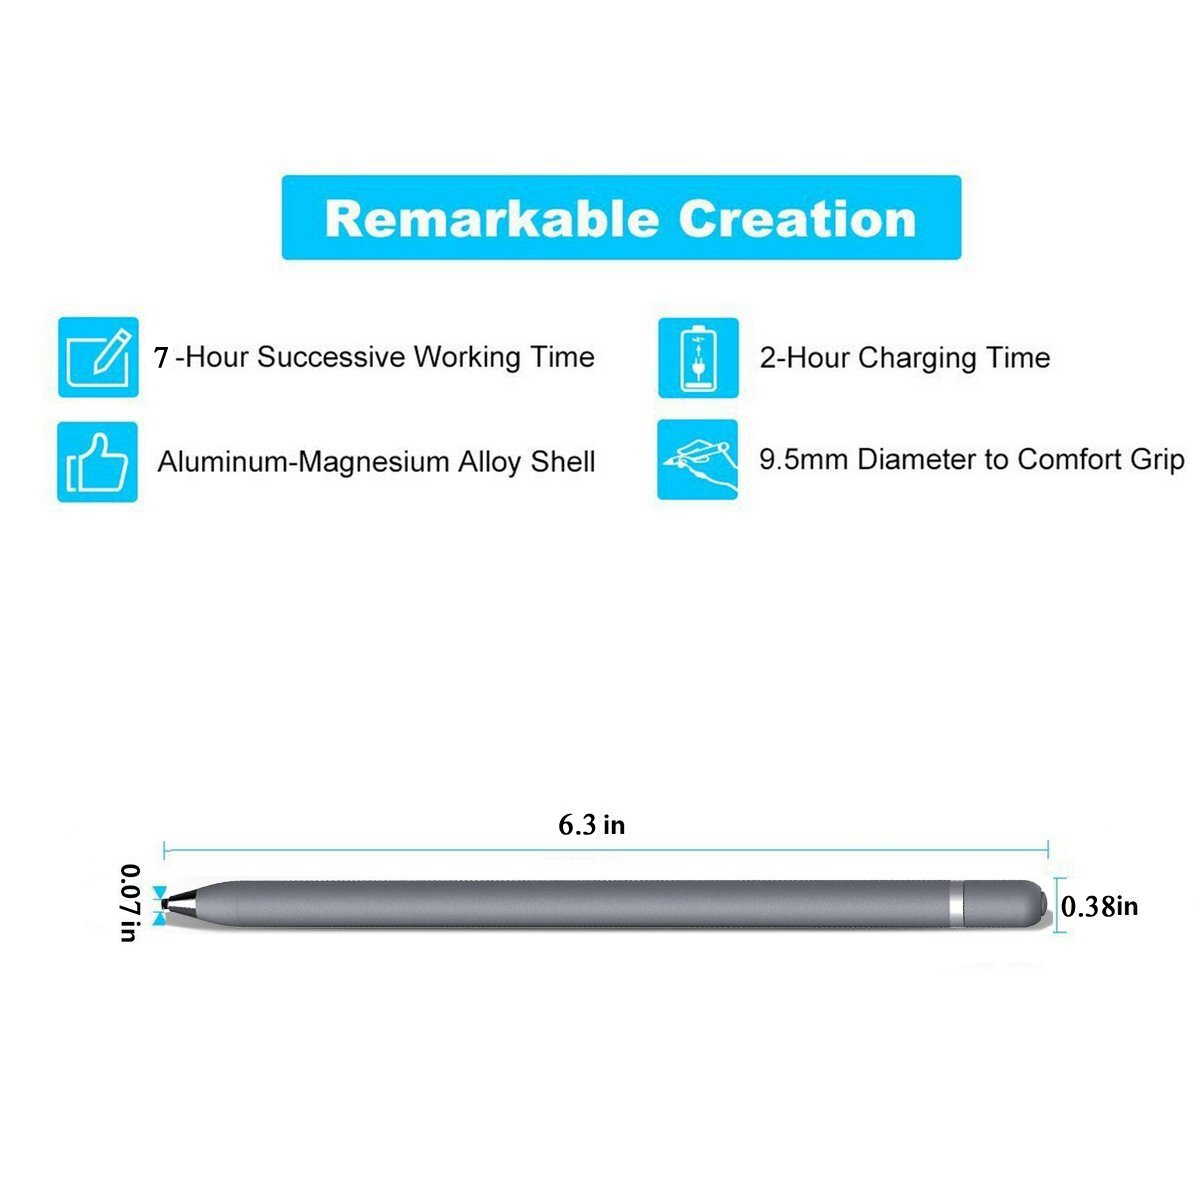 Active Touch Stylus Pens,Rechargeable Accurate Point Stylus Pens,Fine Tip Metal Electronic Styli for iPad,iPhone Plus,Tablets,Smartphones,All Capacitive Touch Screen Devices (Gray) by Peilinc (Image #8)